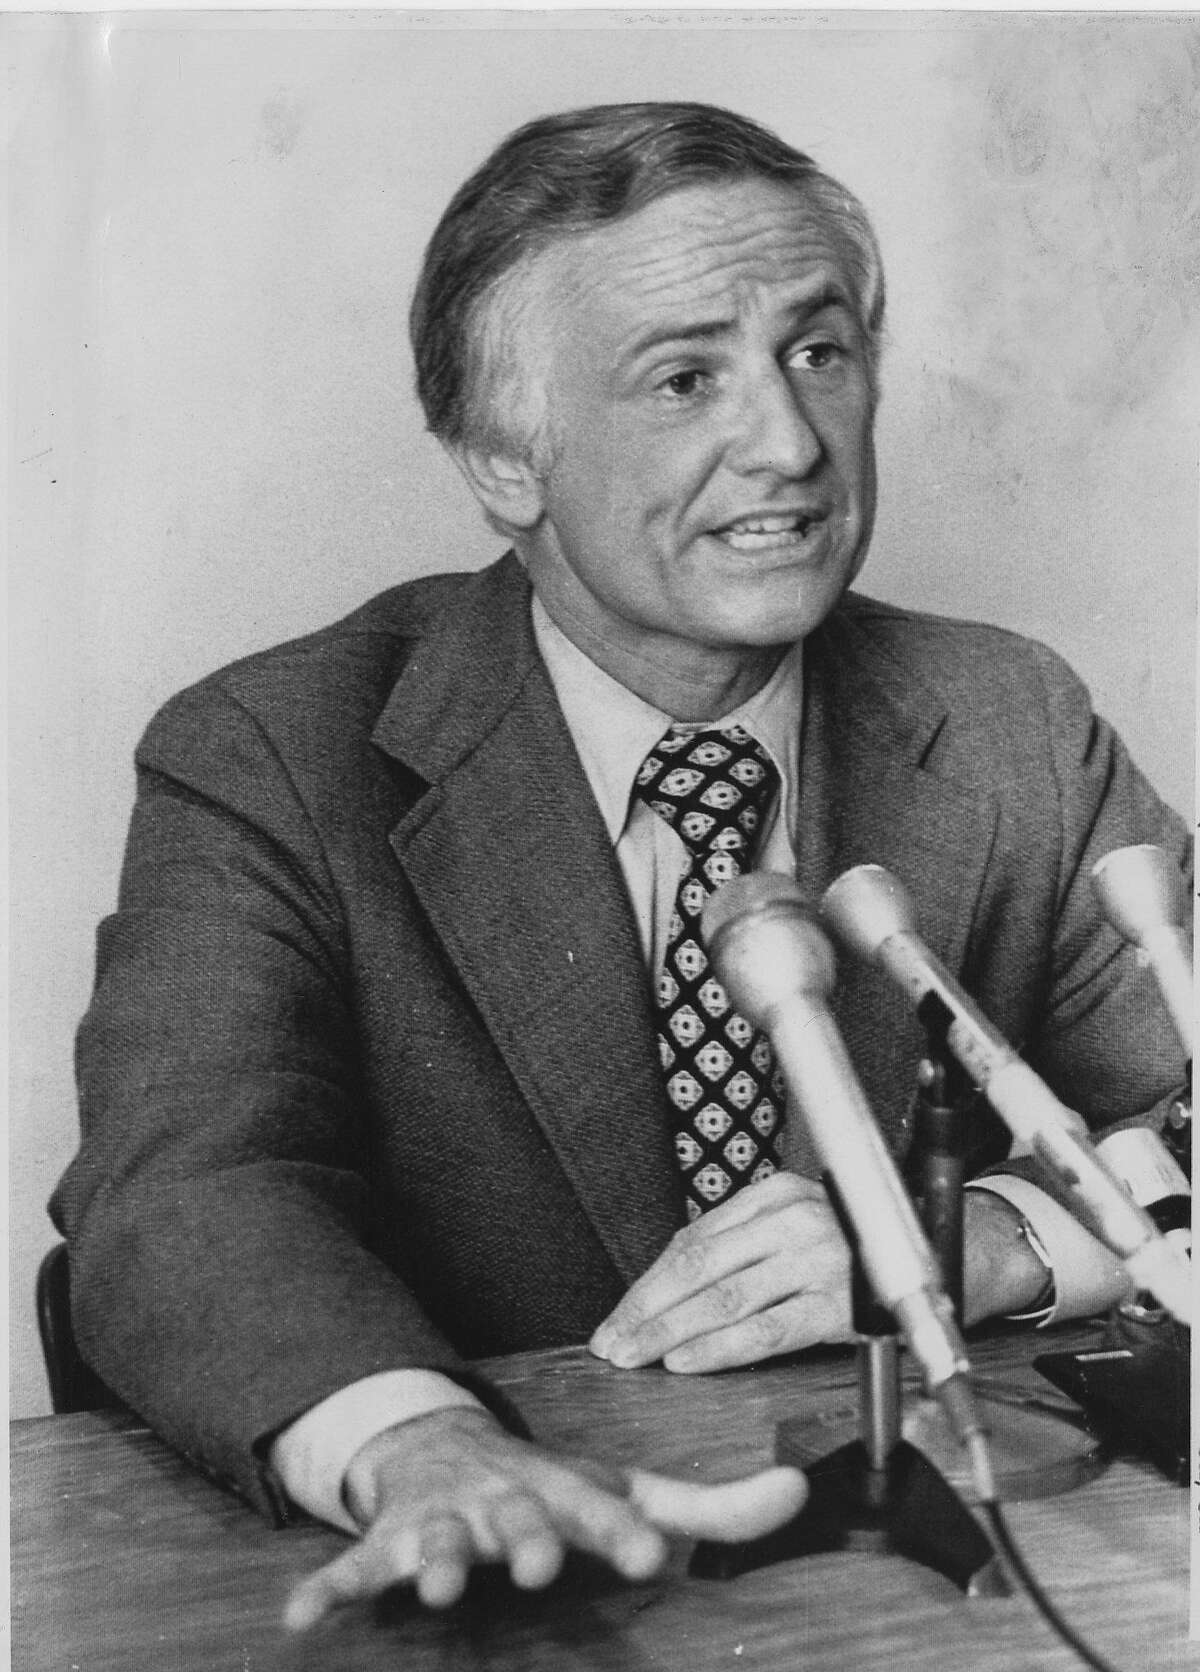 William Norris Democratic candidate for state Attorney General July 2, 1974, UPI photo